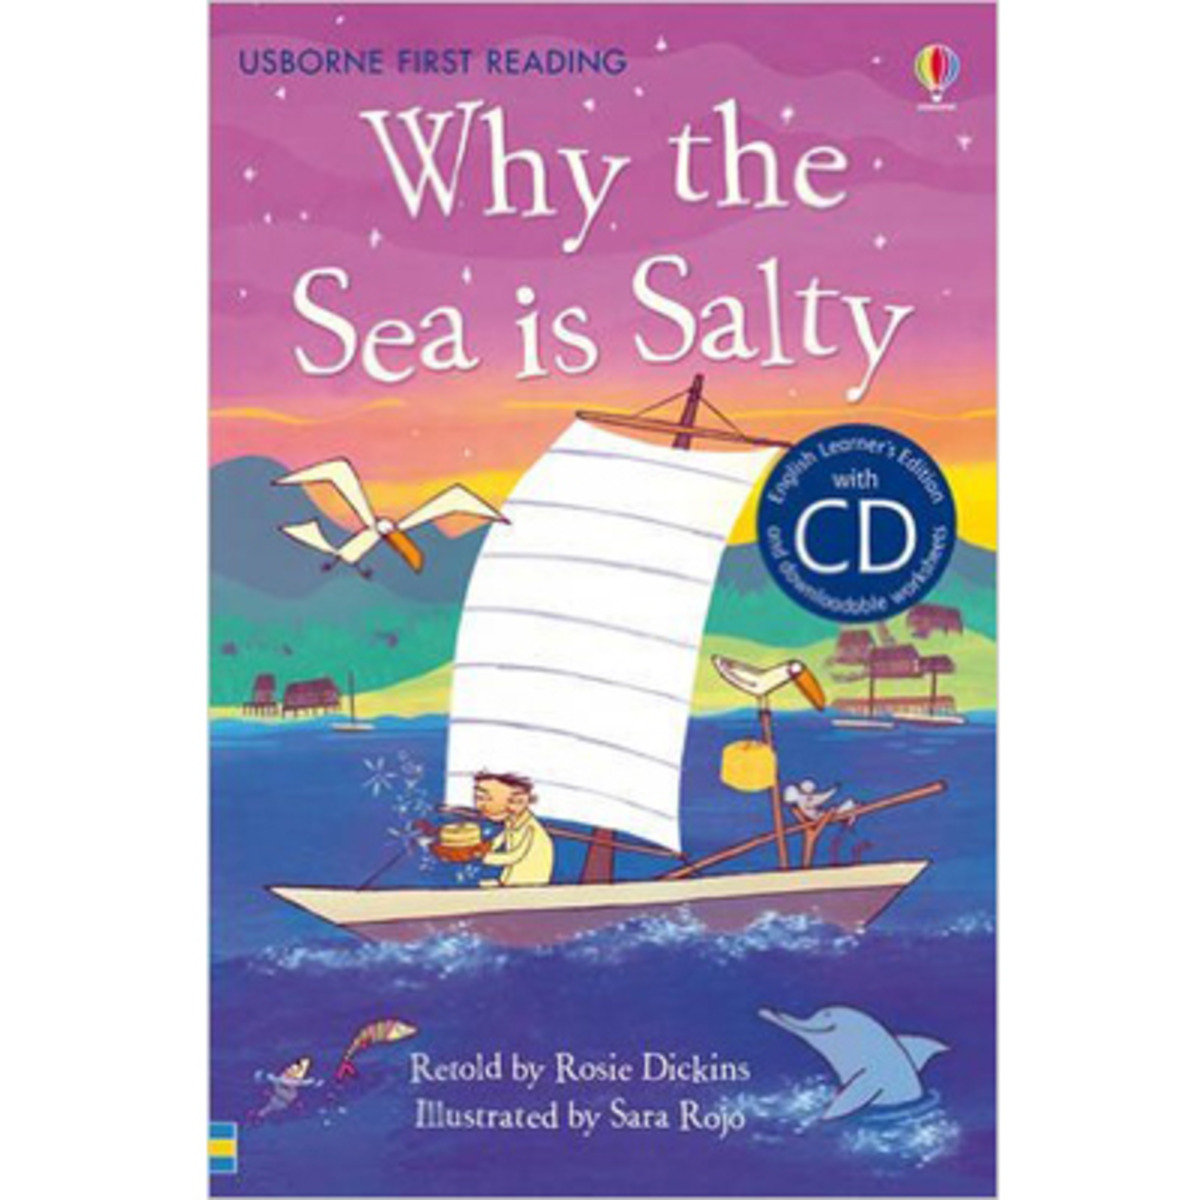 Why the Sea is Salty-First Reading 4 with CD